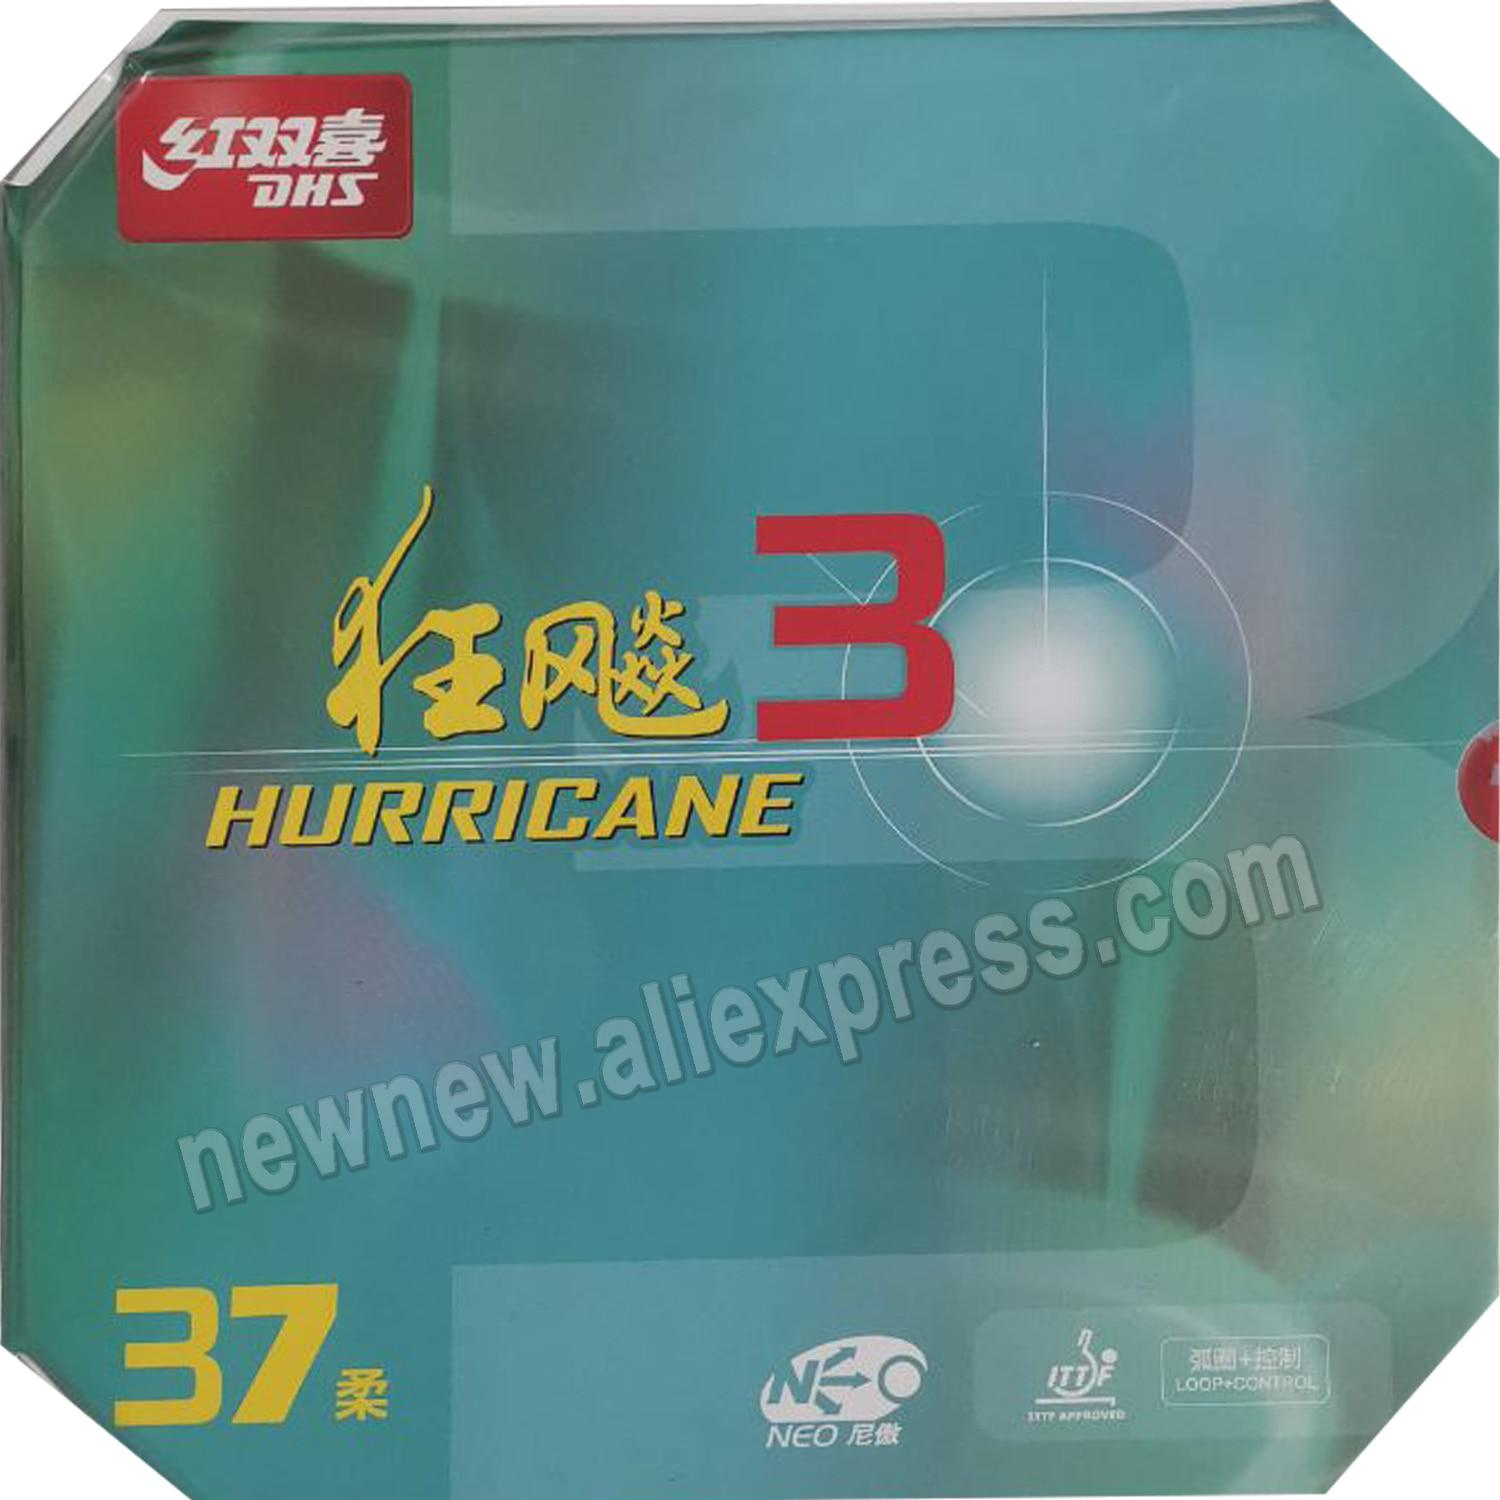 Dhs neo hurricane 3 neo hurricane3 neo hurricane-3 pips-in ping